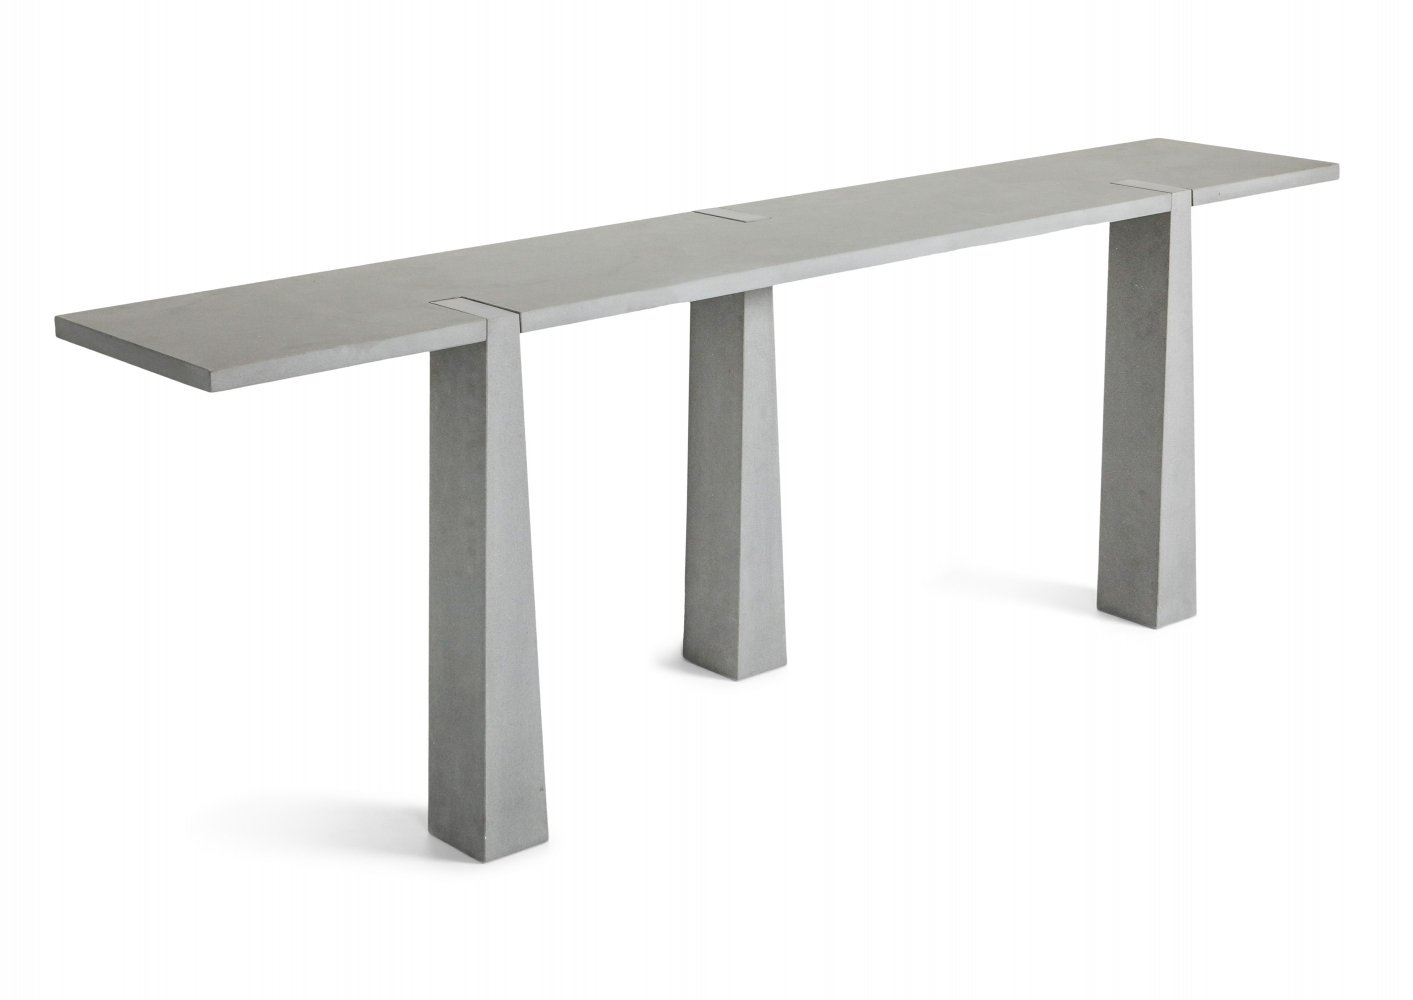 Inca console table by Angelo Mangiarotti for Skipper, Italy 1970